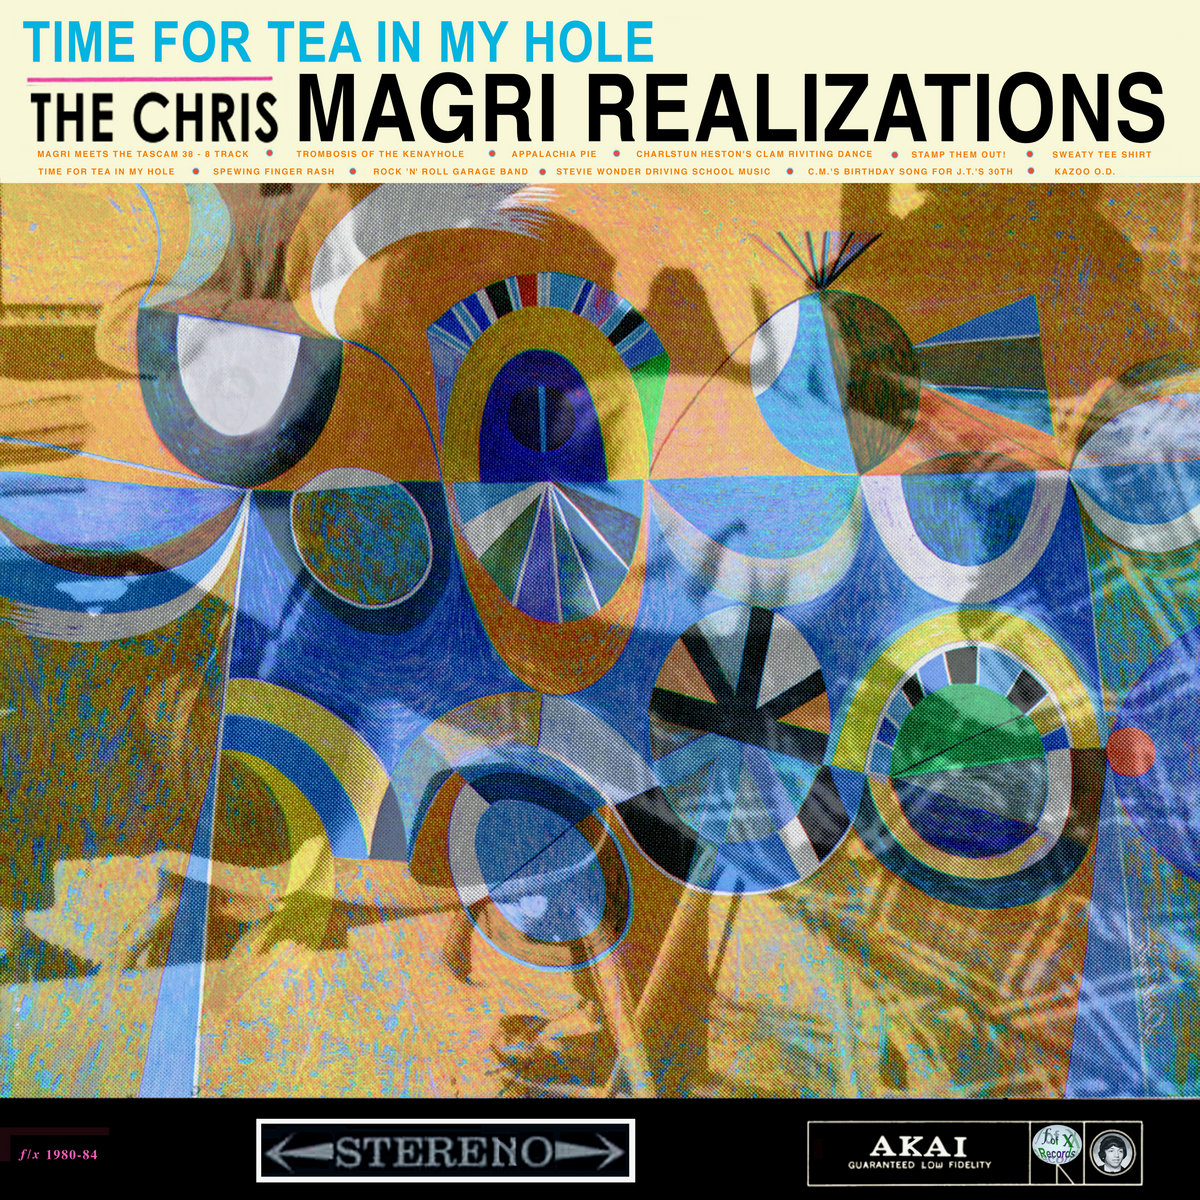 The Chris Magri Realizations | John Tabacco